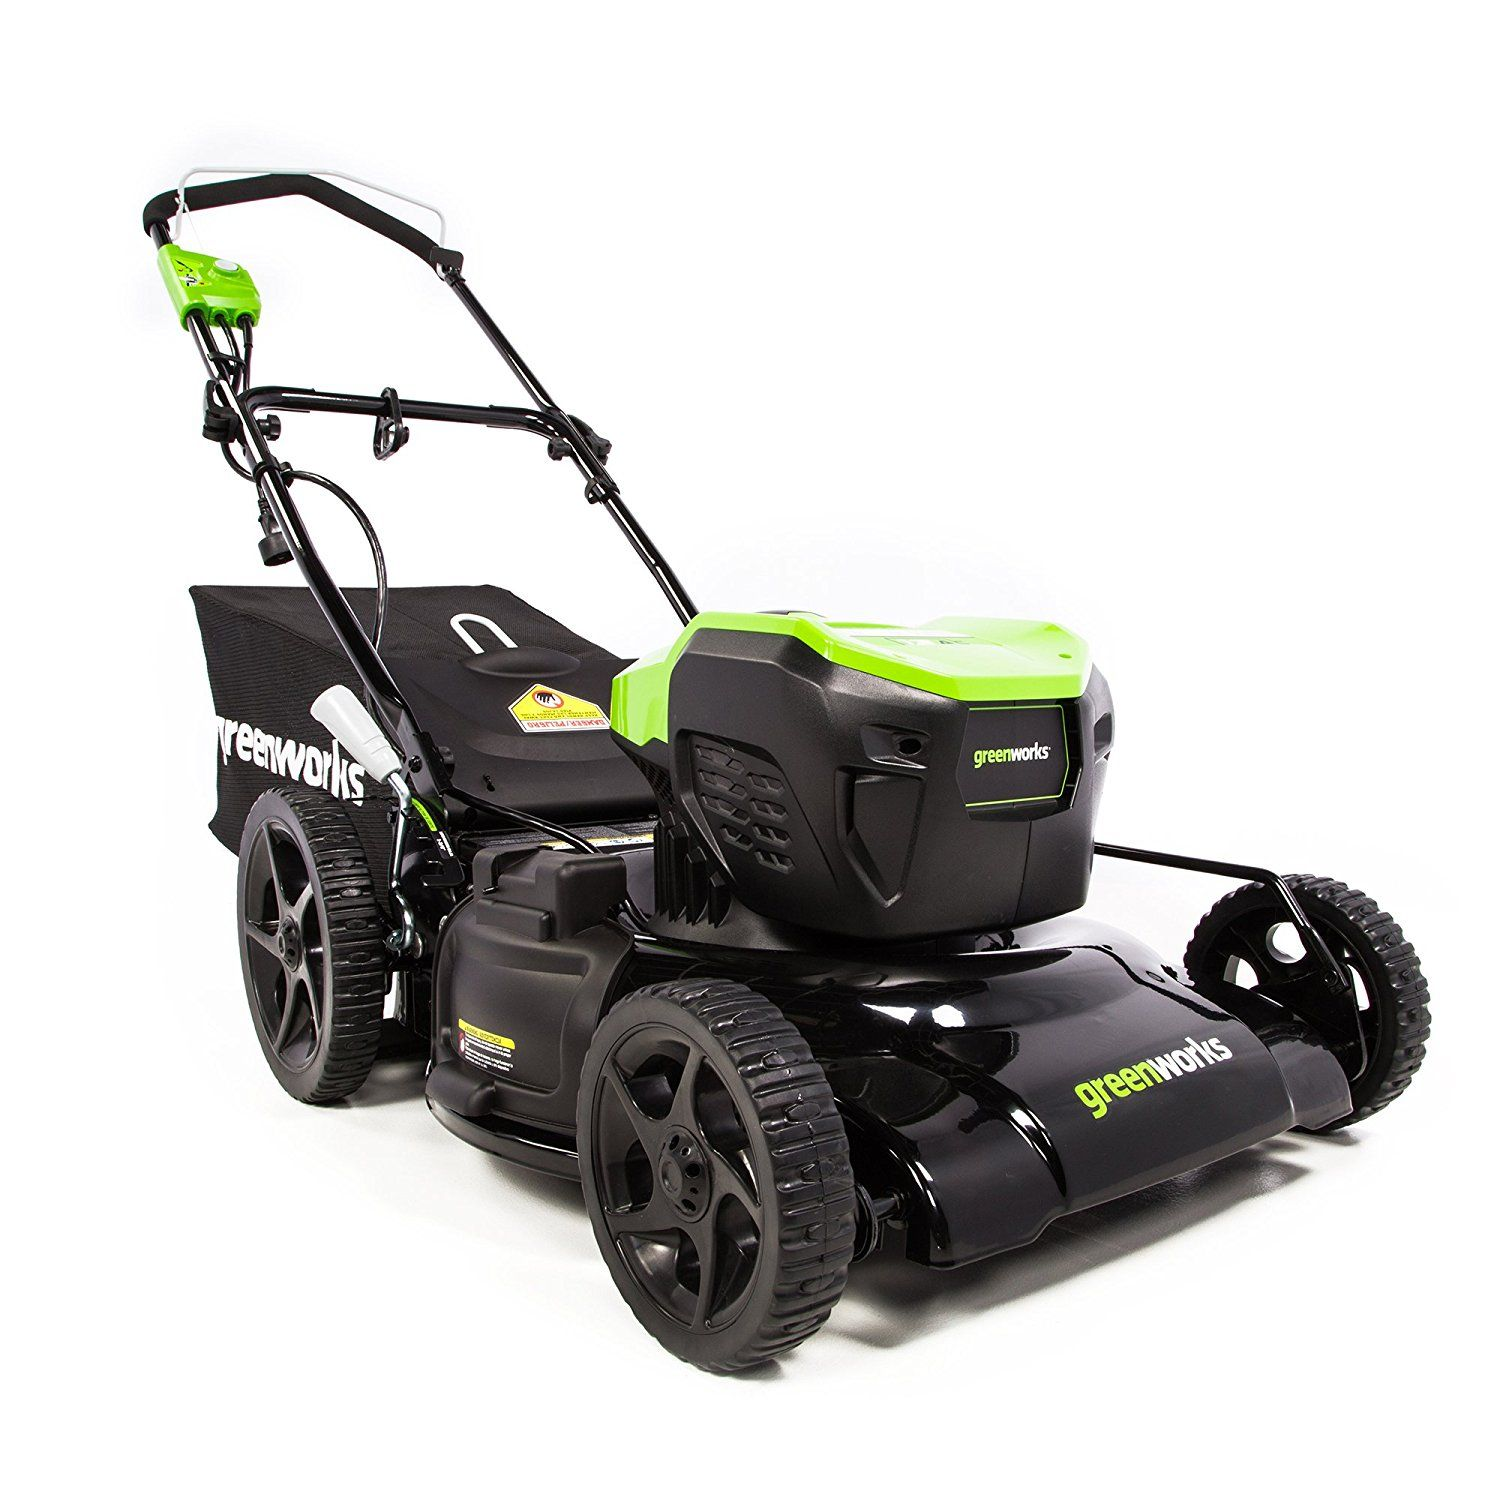 Best Riding Lawn Mower 2021 Greenworks 21 Inch 13 Amp Corded Lawn Mower MO13B00   Best Push